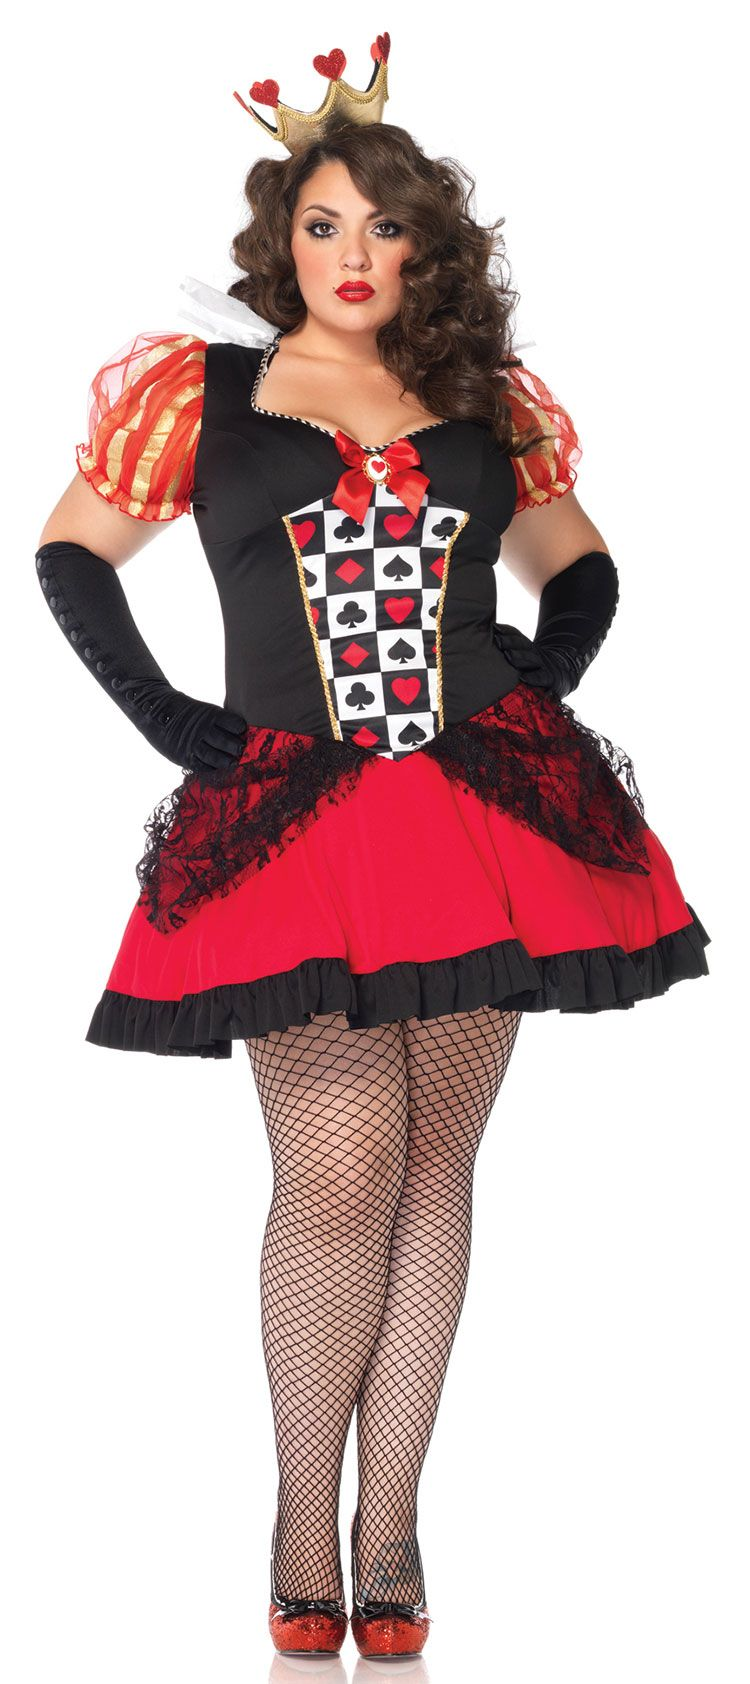 e5b7ac4ee40d85 Plus Size Wicked Queen Costume Product Description Adult Halloween Costumes  - This Plus Size Wicked Queen Costume includes the card suit checkerboard  dress ...